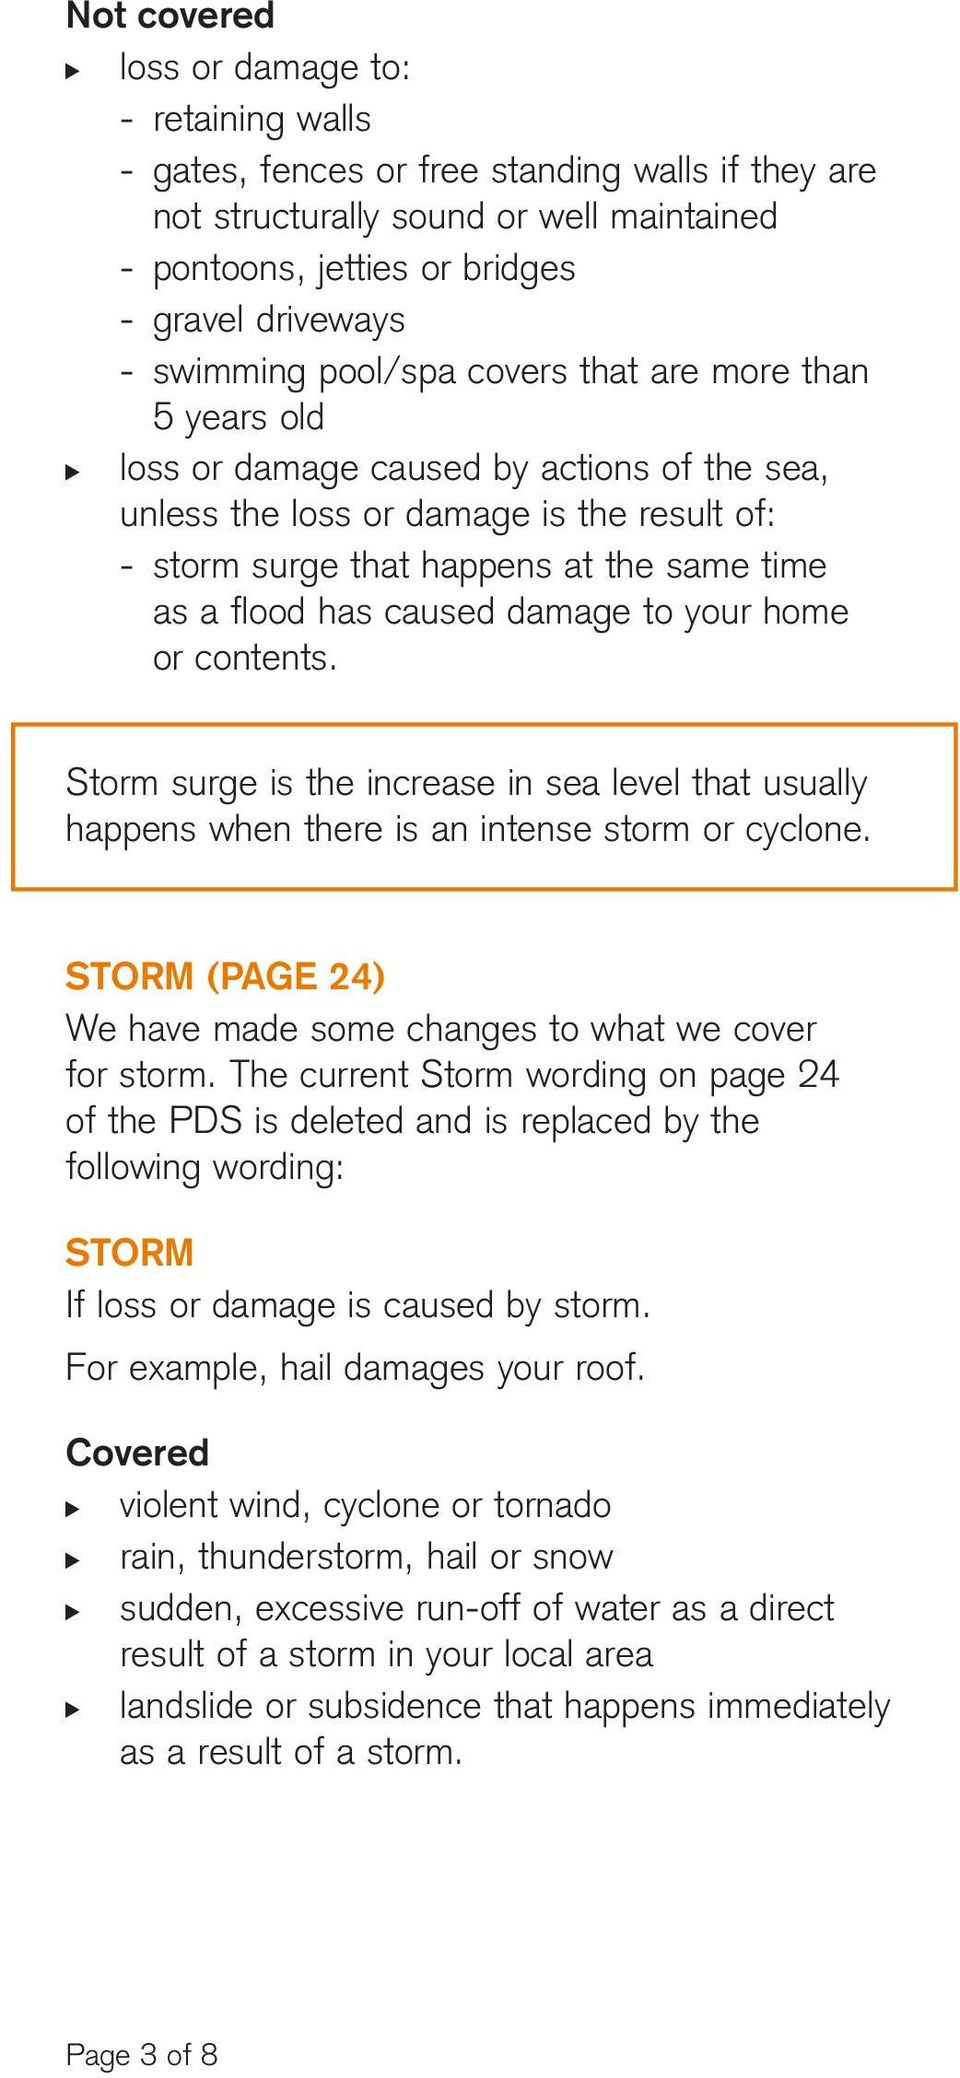 has caused damage to your home or contents. Storm surge is the increase in sea level that usually happens when there is an intense storm or cyclone.